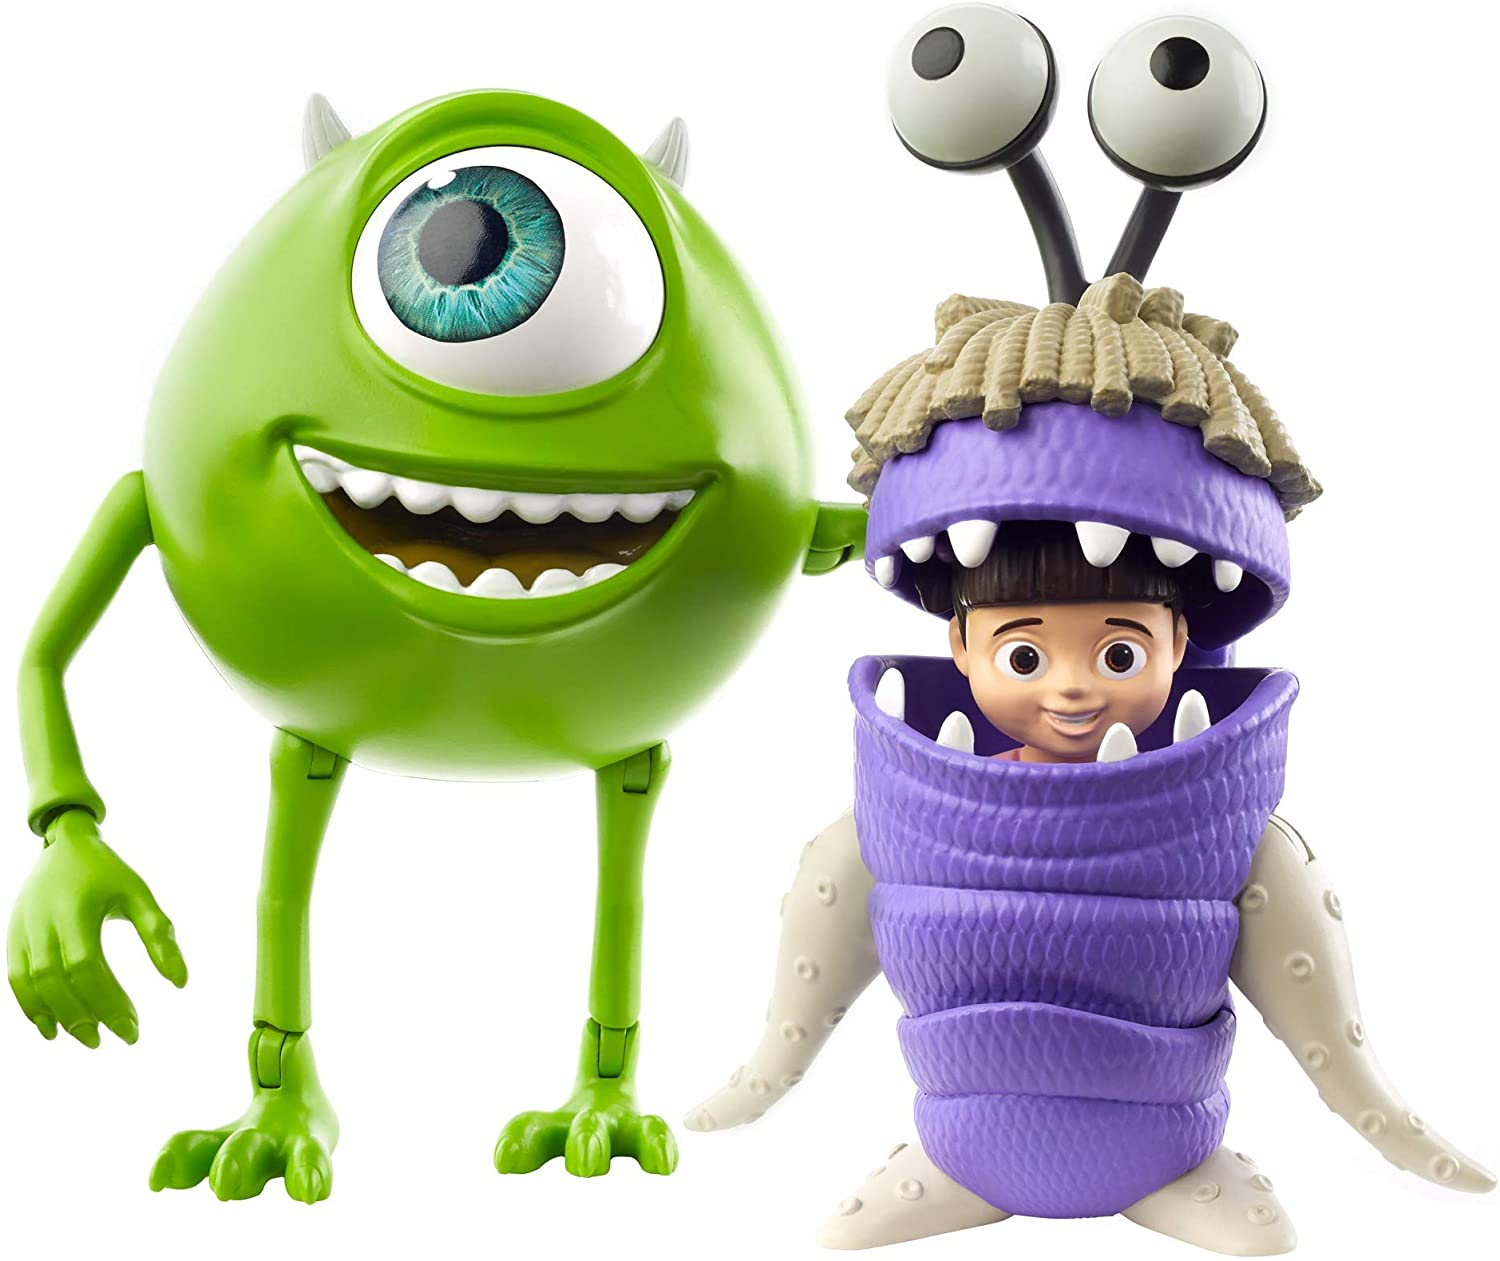 Disney Monsters Inc Boo and Mike Wazowski Action Figures Set